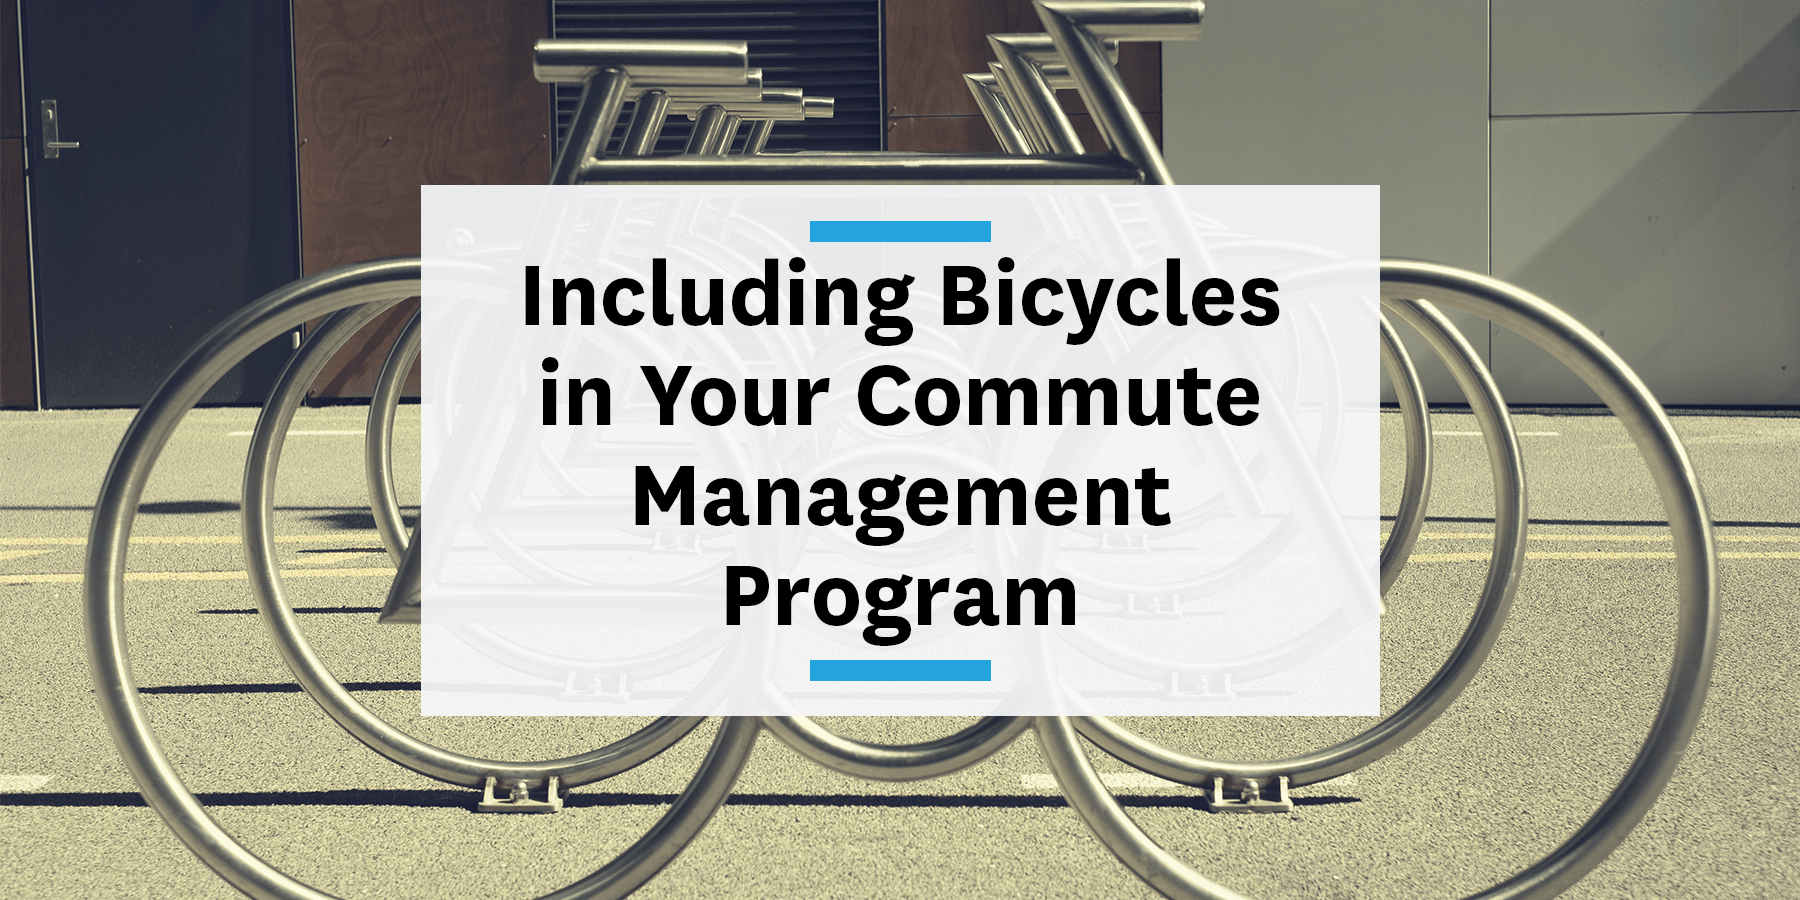 Including bicycles in your commute management program